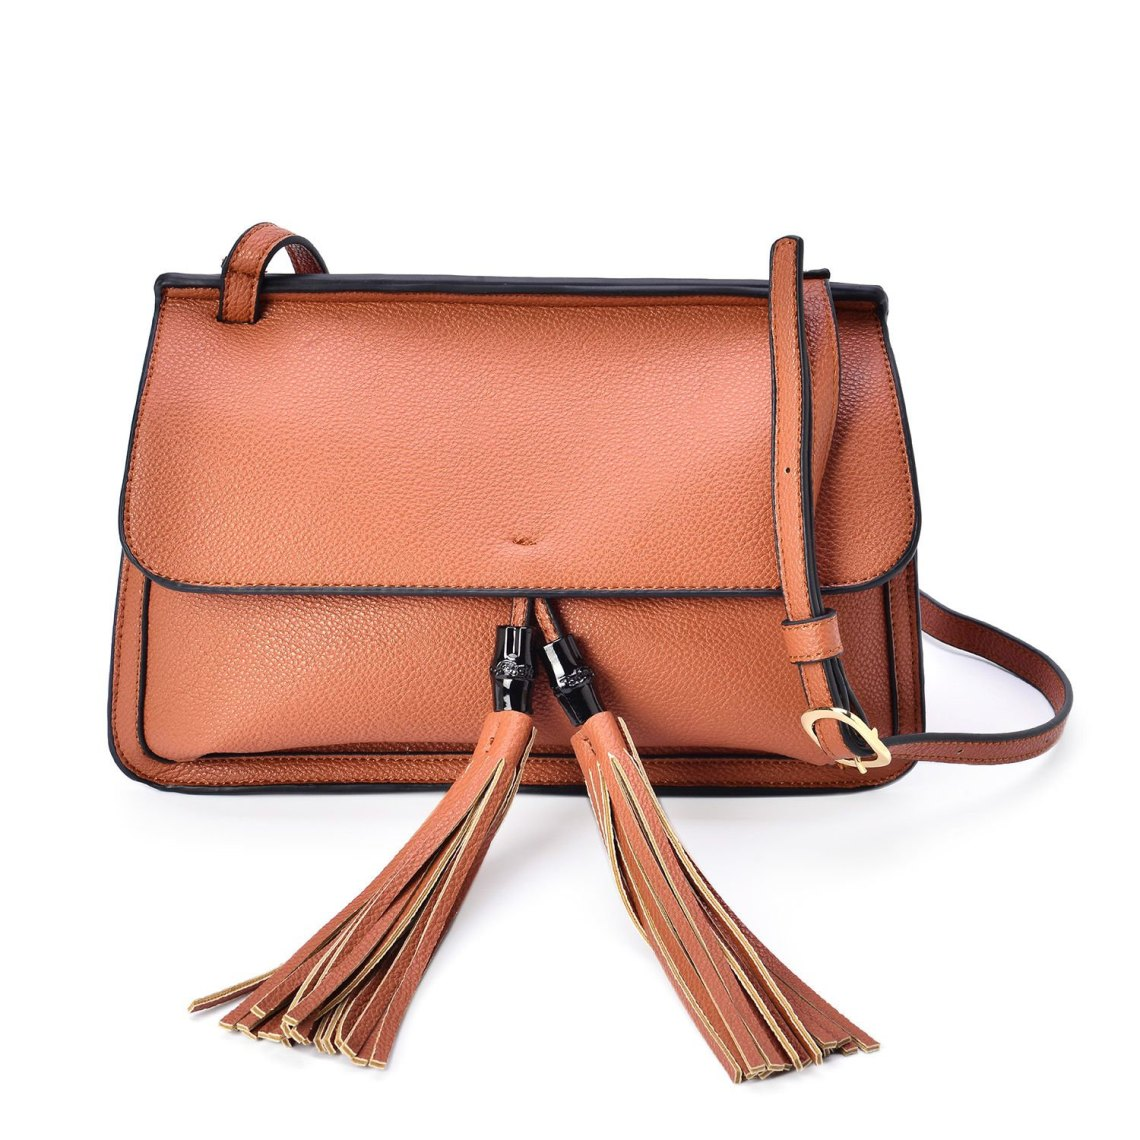 J Francis - Tobacco Faux Leather Crossbody Bag with Tassel